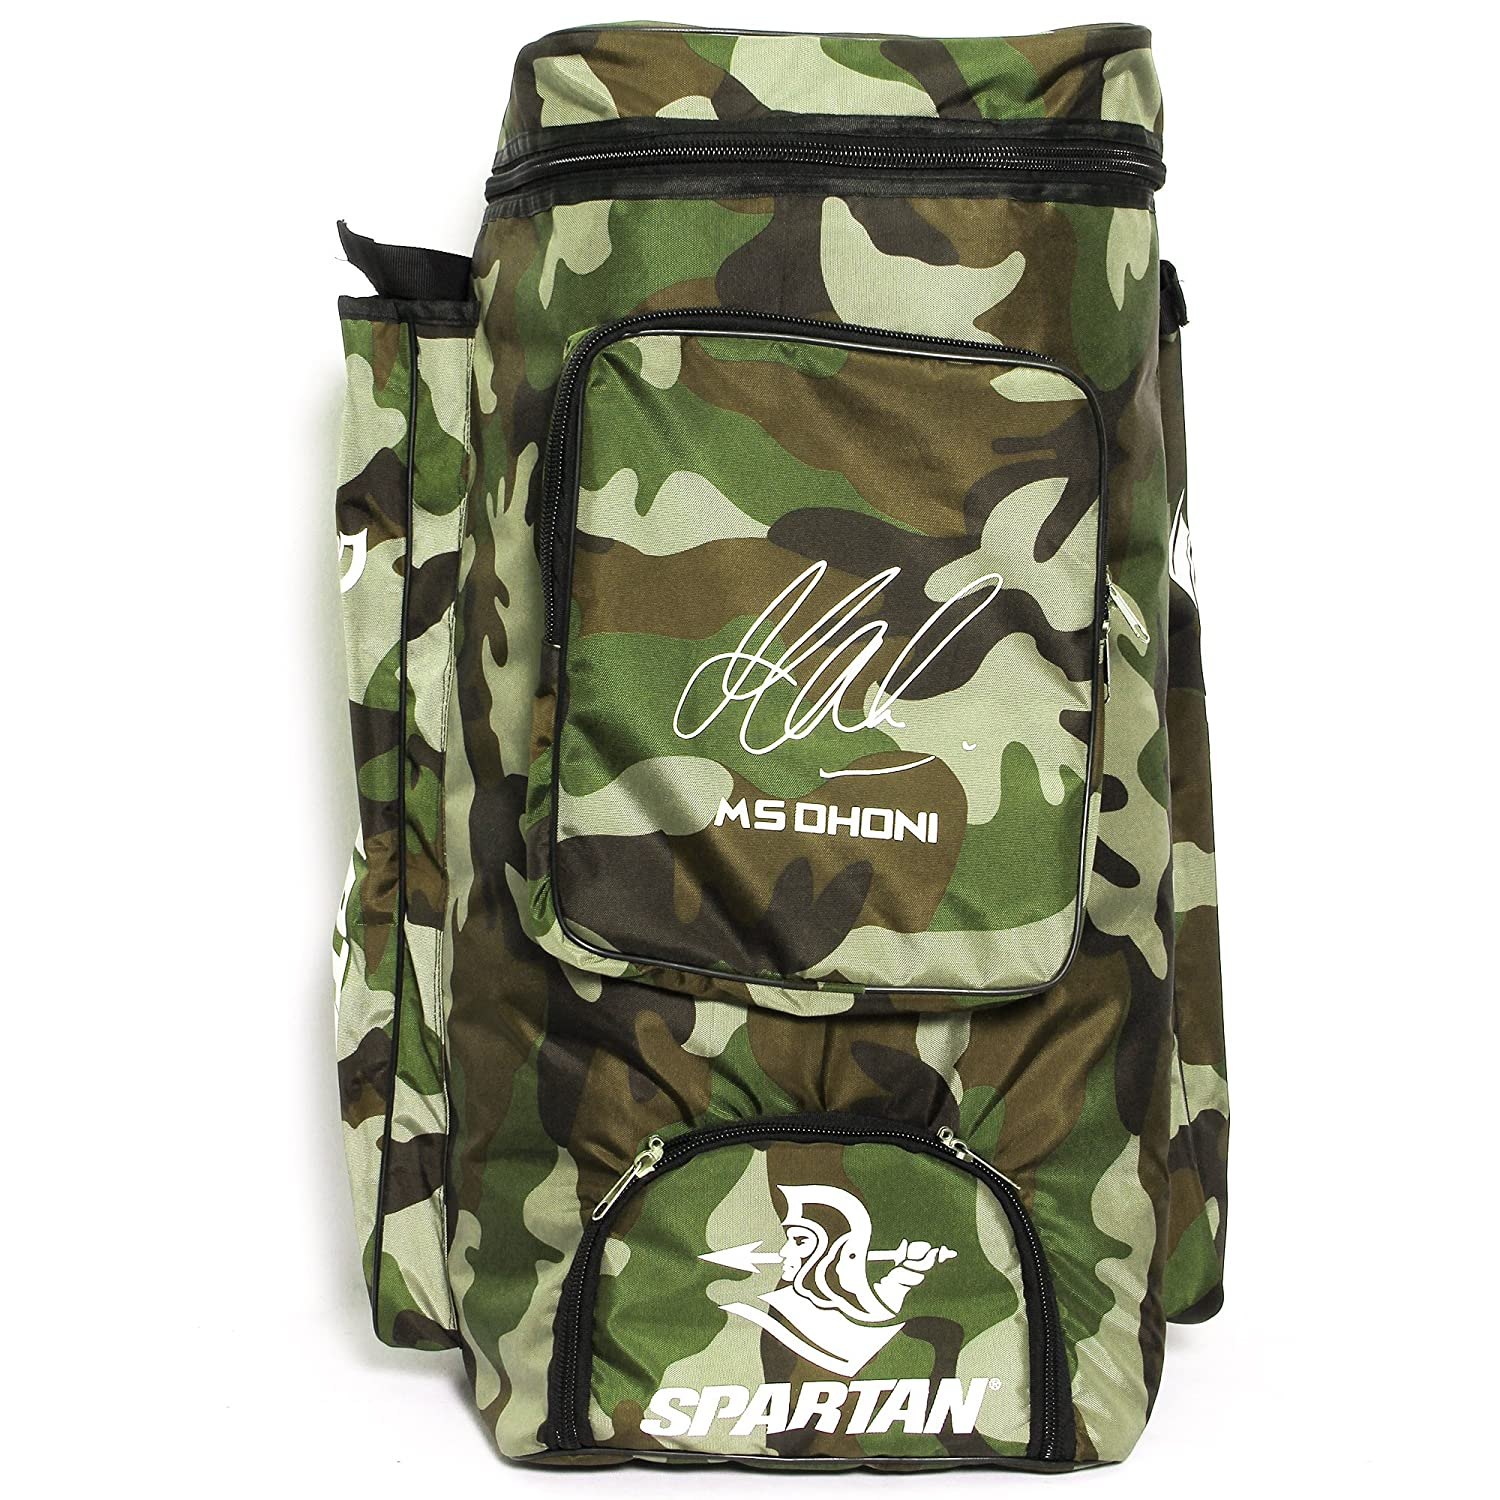 606bd5e785c Buy Spartan Ms Dhoni Cricket Kit Camouflage Backpack- White Print Online at  Low Prices in India - Amazon.in